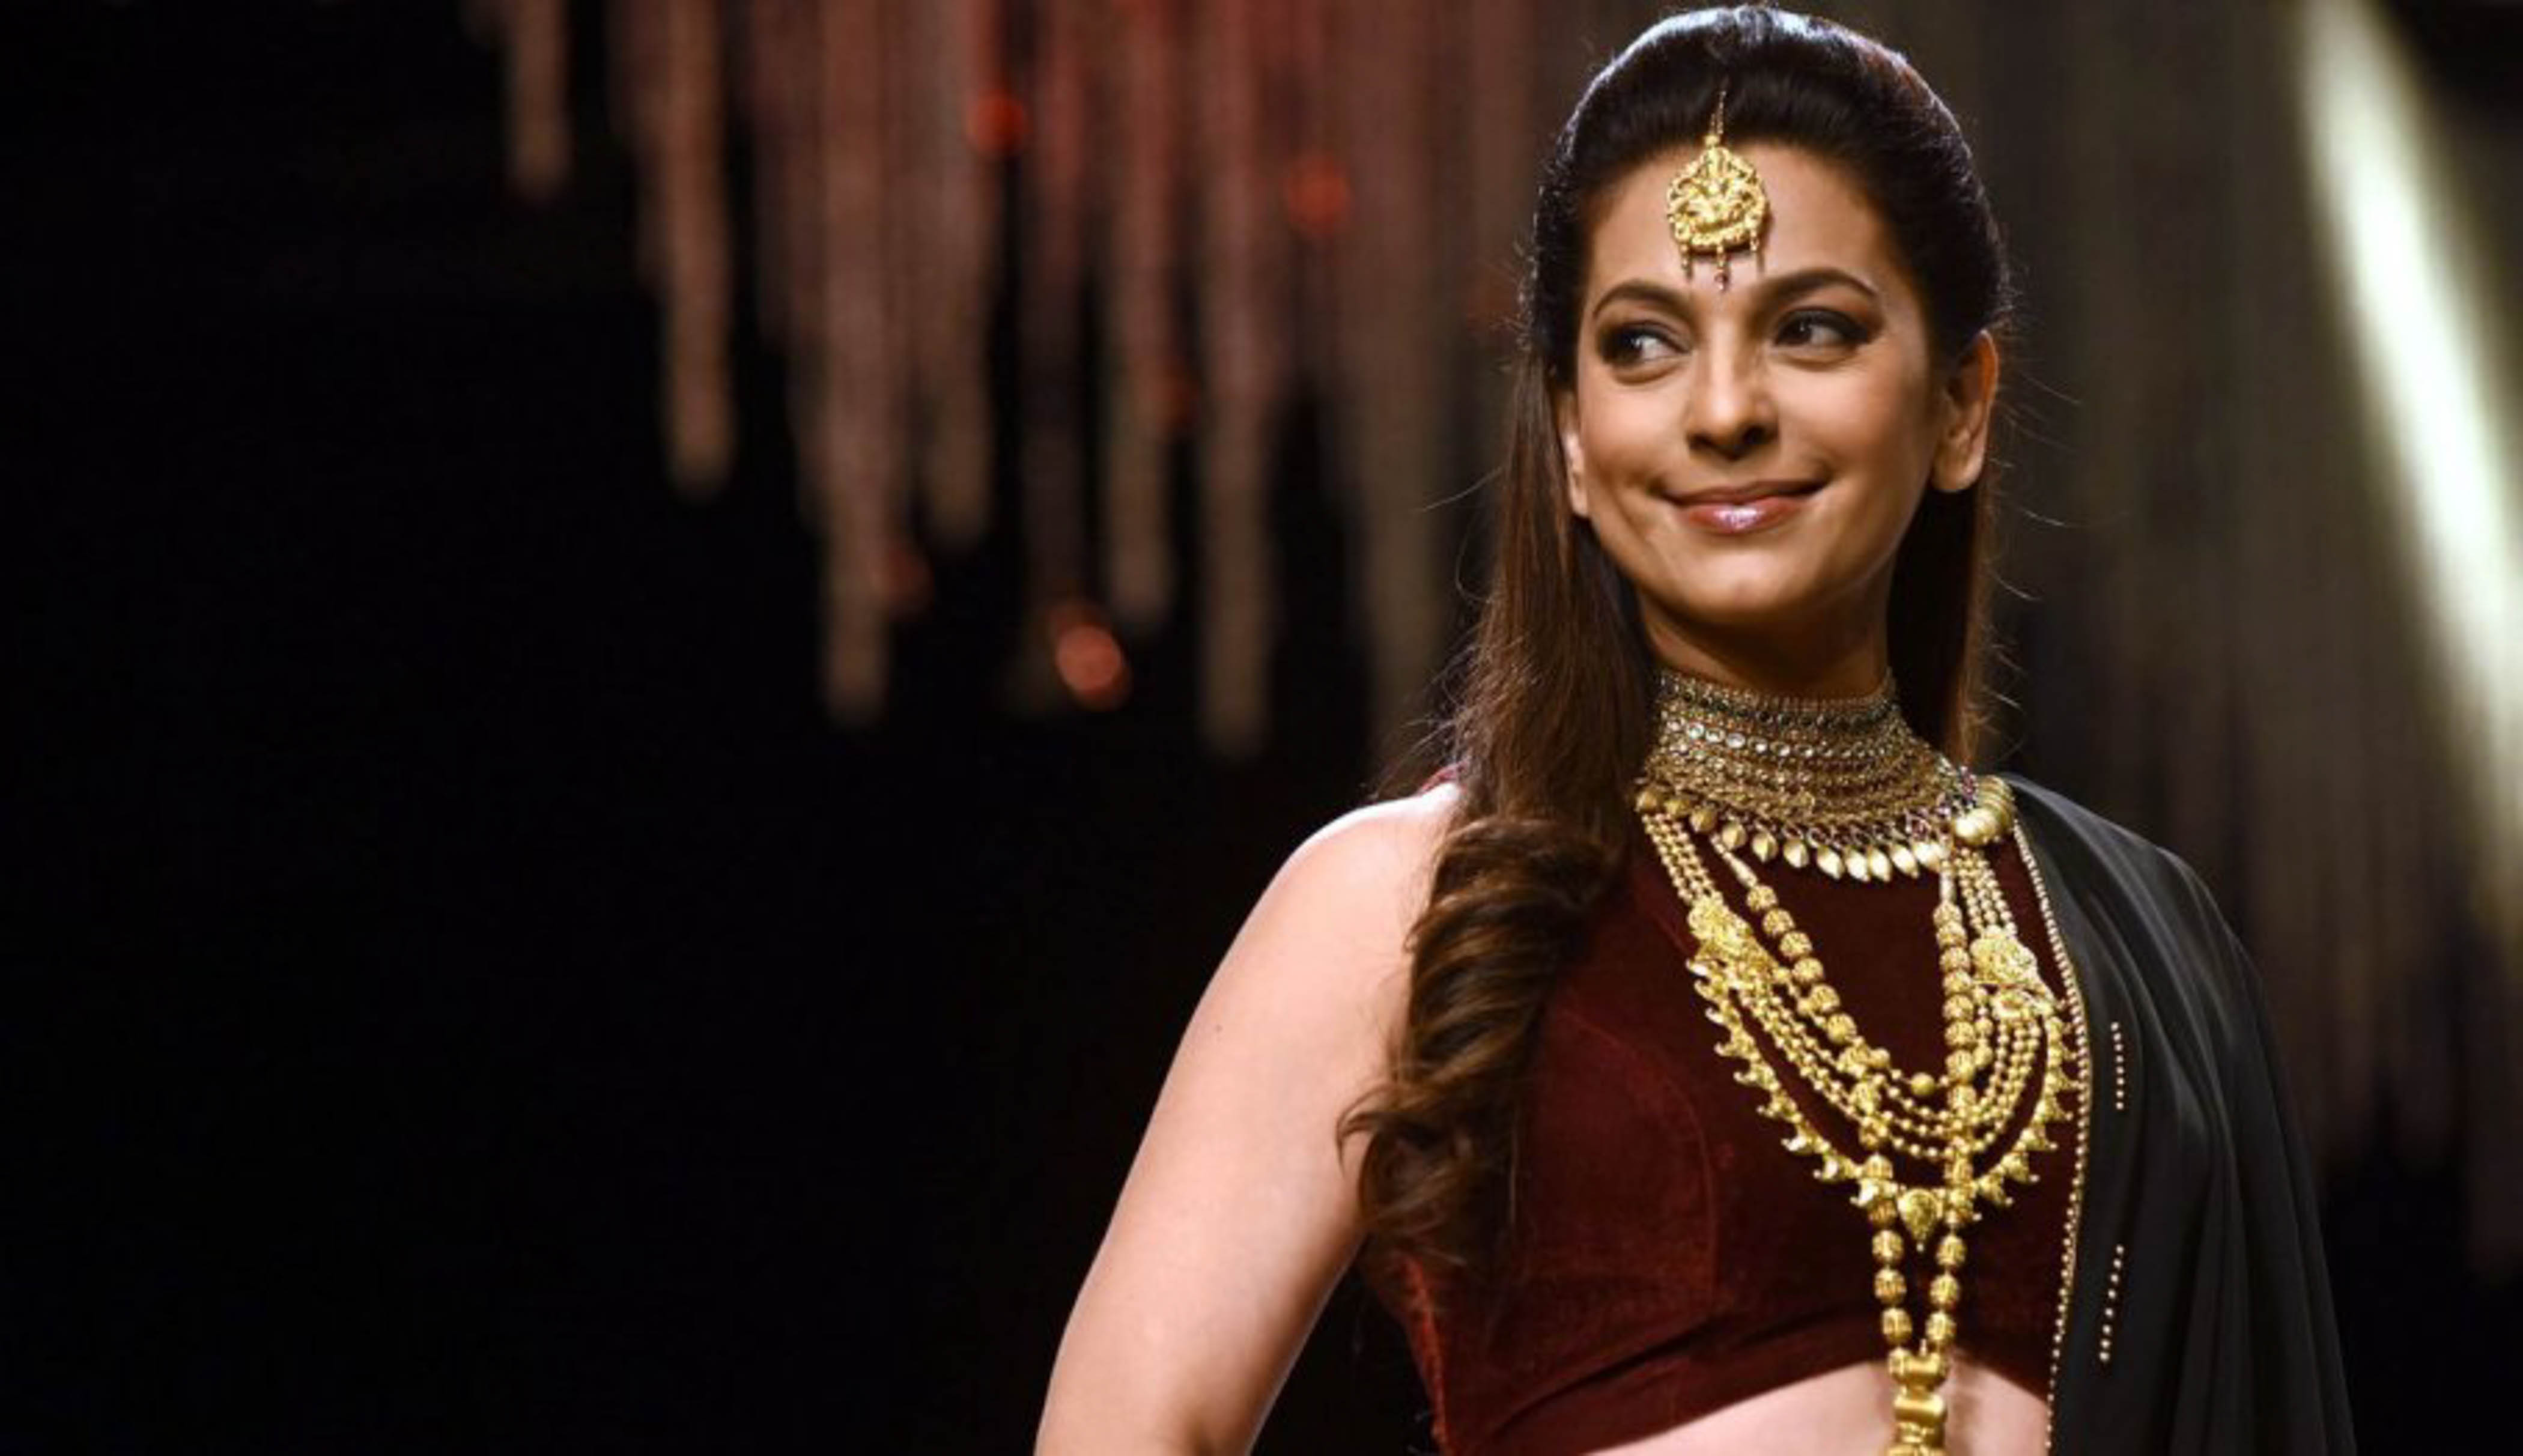 Bridal Jewellery Trends for the Modern Indian Bride - Juhi Chawla - The Maharani Diaries